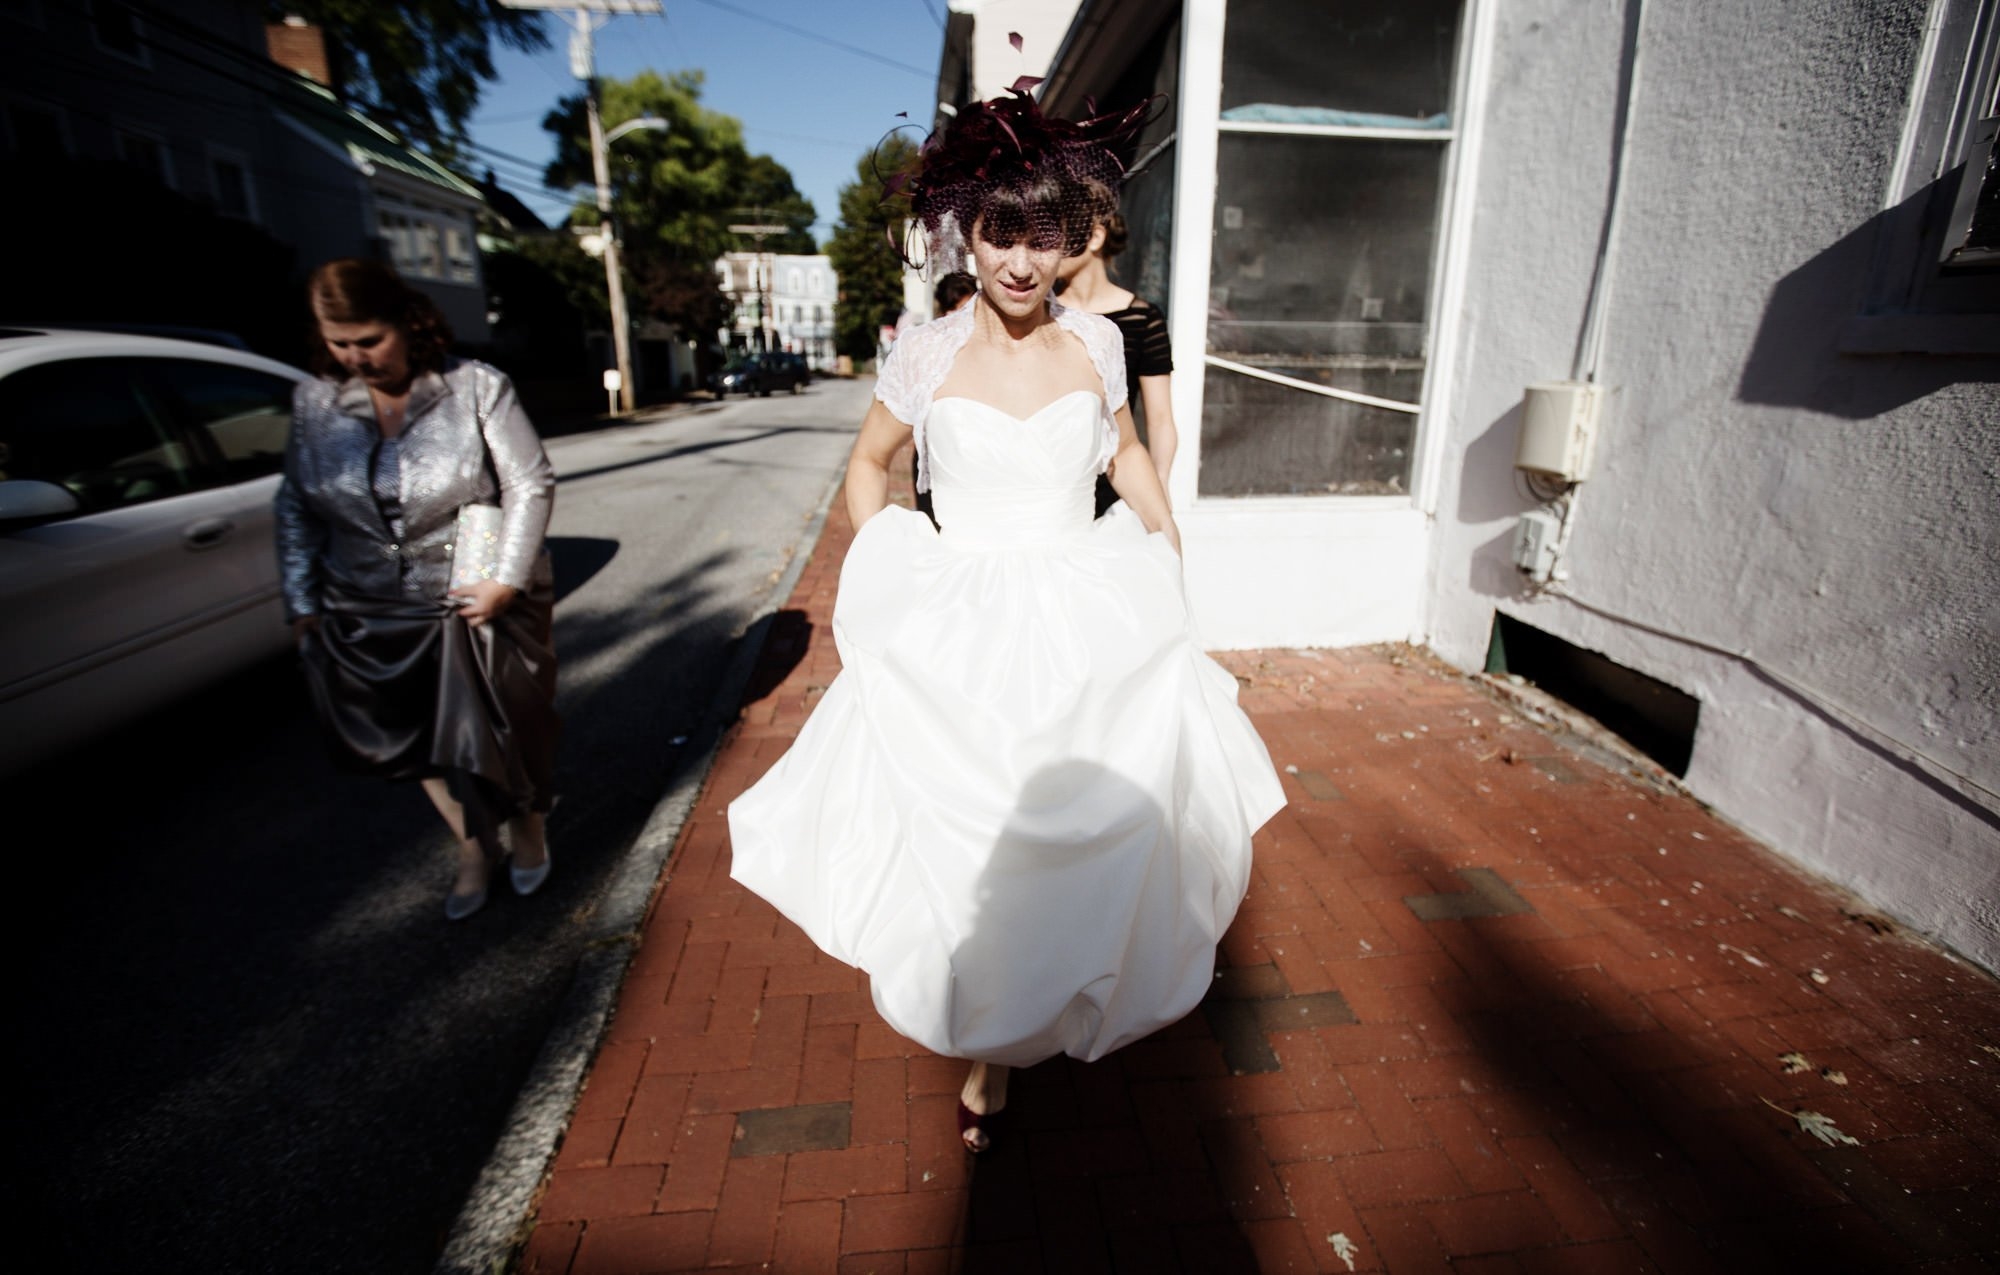 The bride walks down the street in Annapolis, MD.